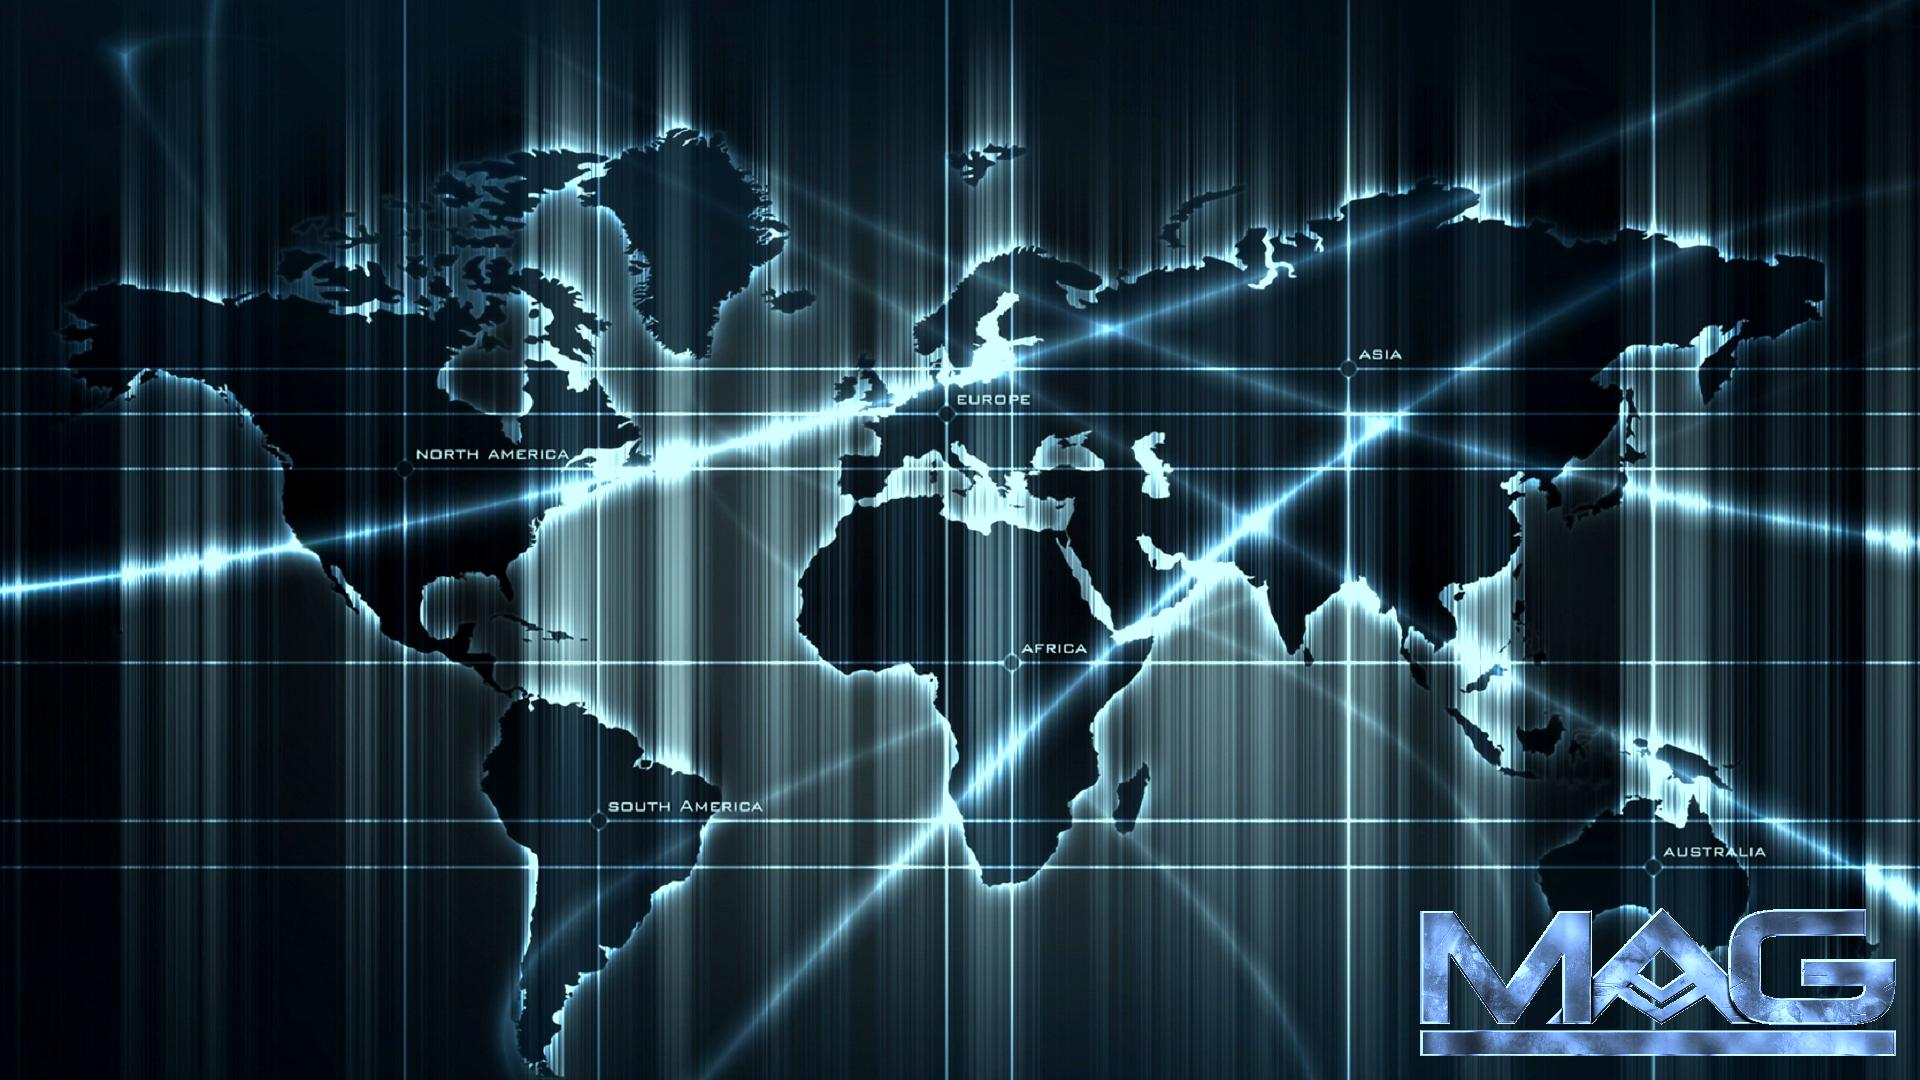 imagespsxextremecomwallpapersps3mag   world map 604jpg 1920x1080